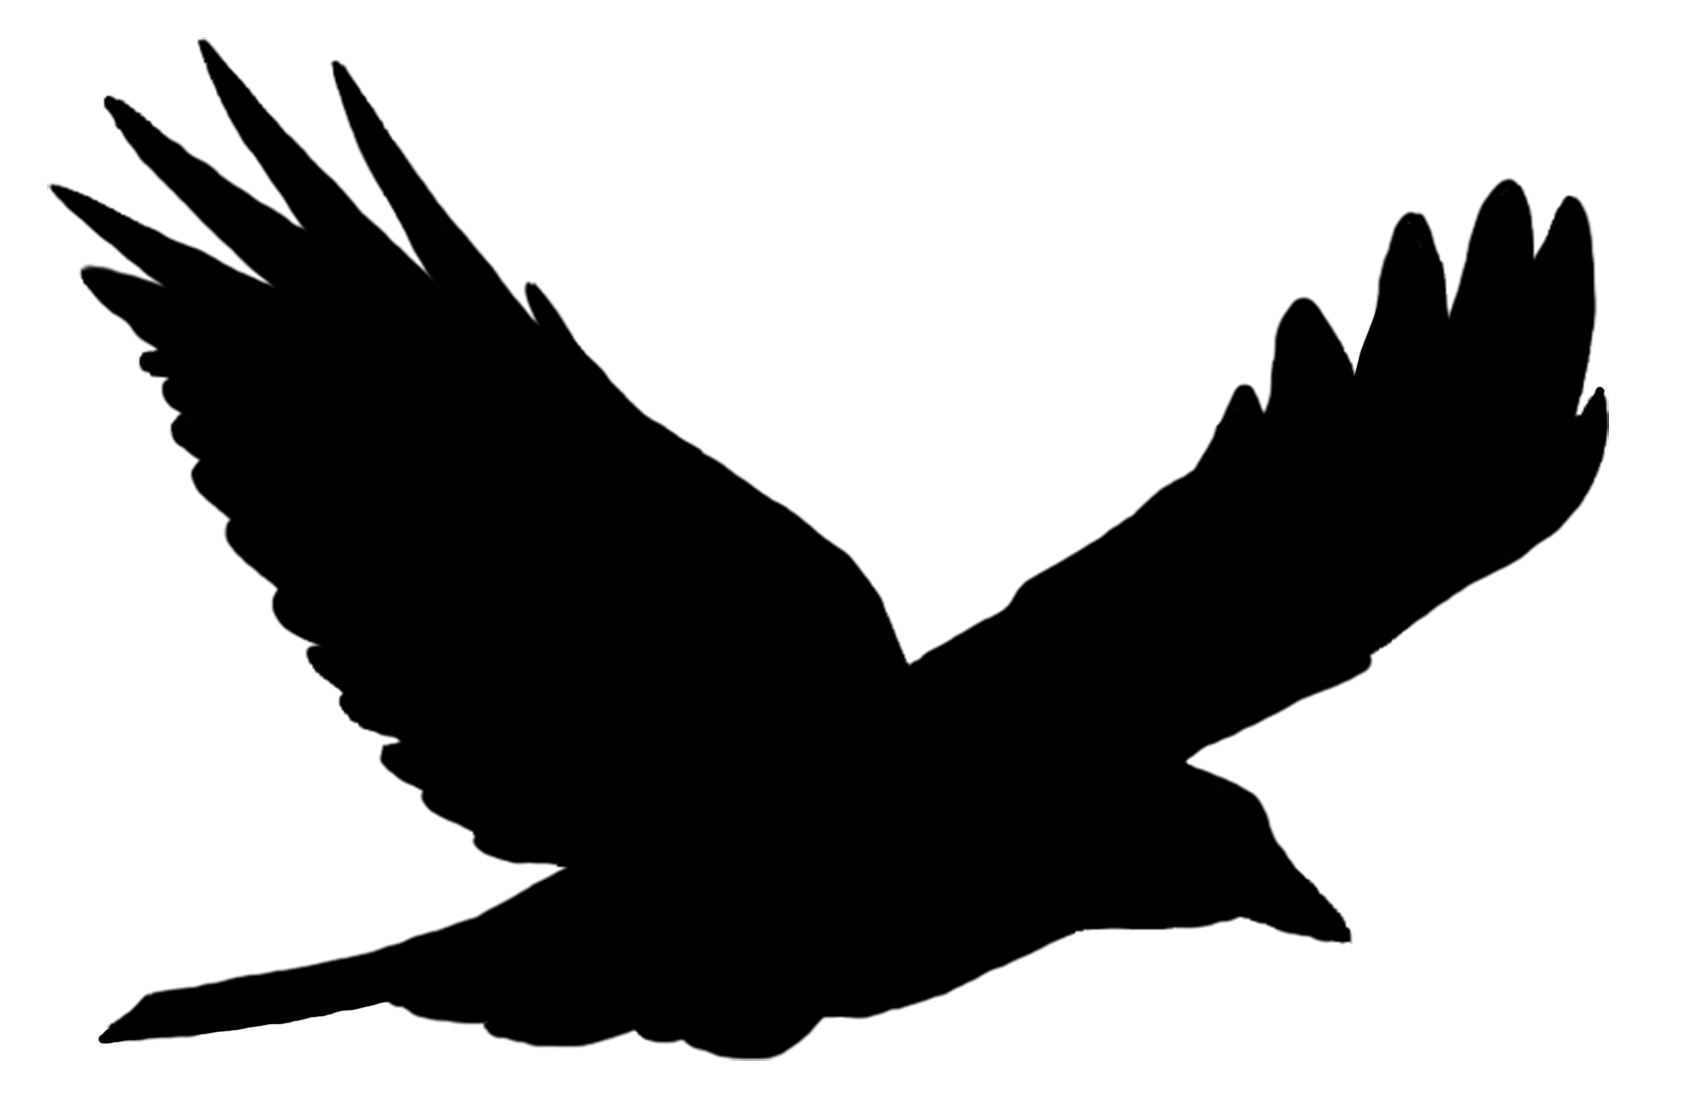 Bird Silhouette Solo Flying transparent PNG.